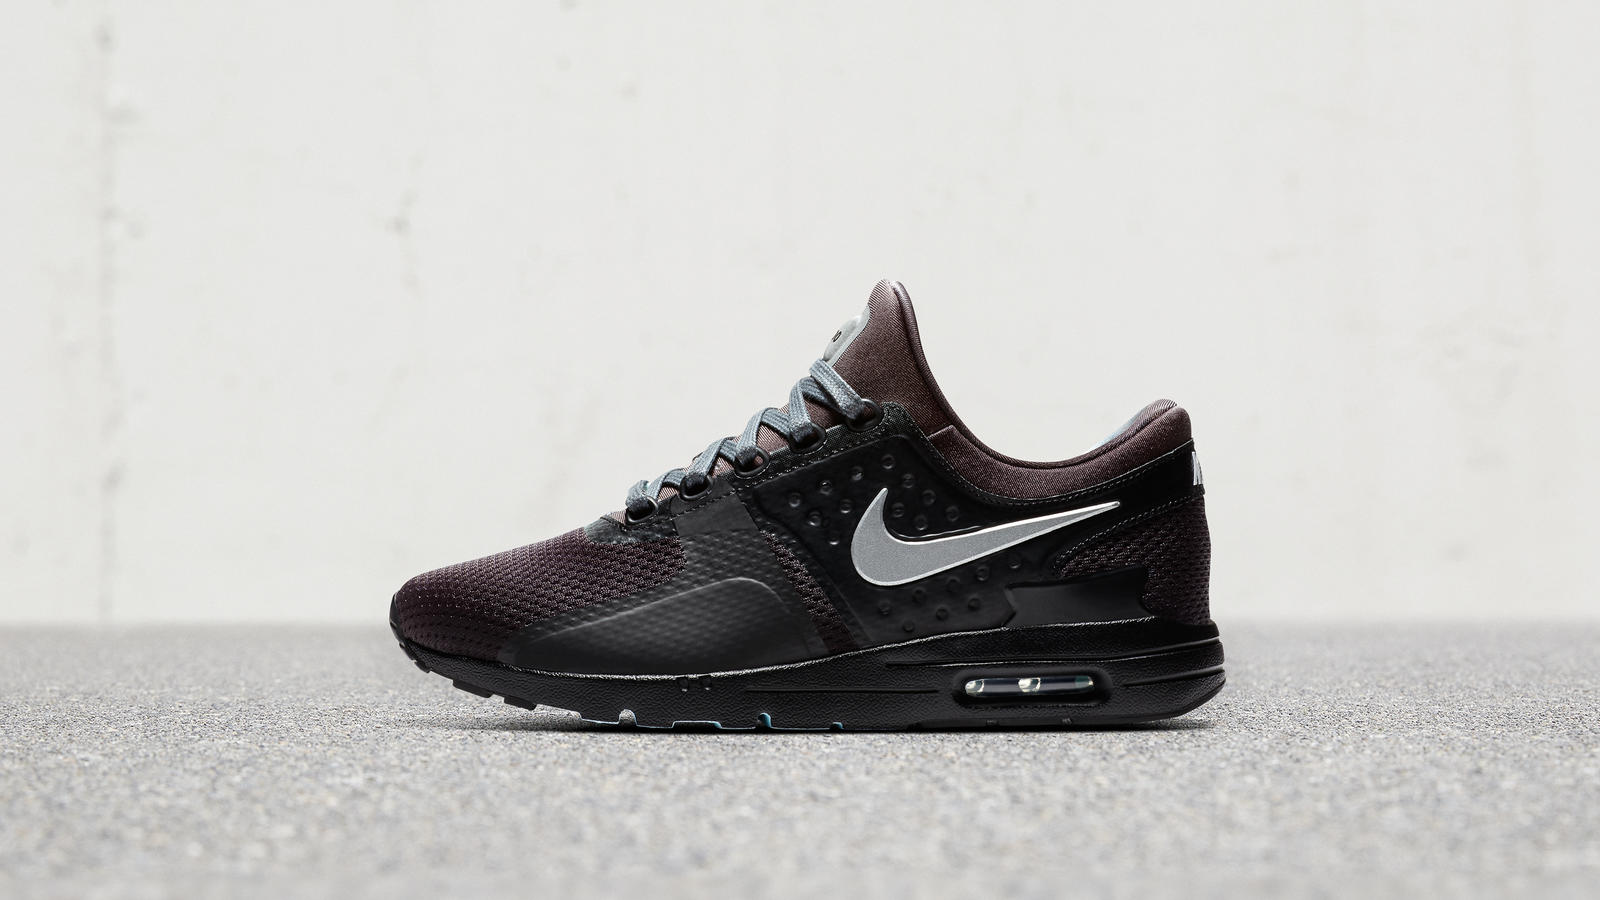 2f84042d35 Kaycee Rice's Nike Air Max Zero design is available January 20 in grade  school sizes on nike.com in North America.